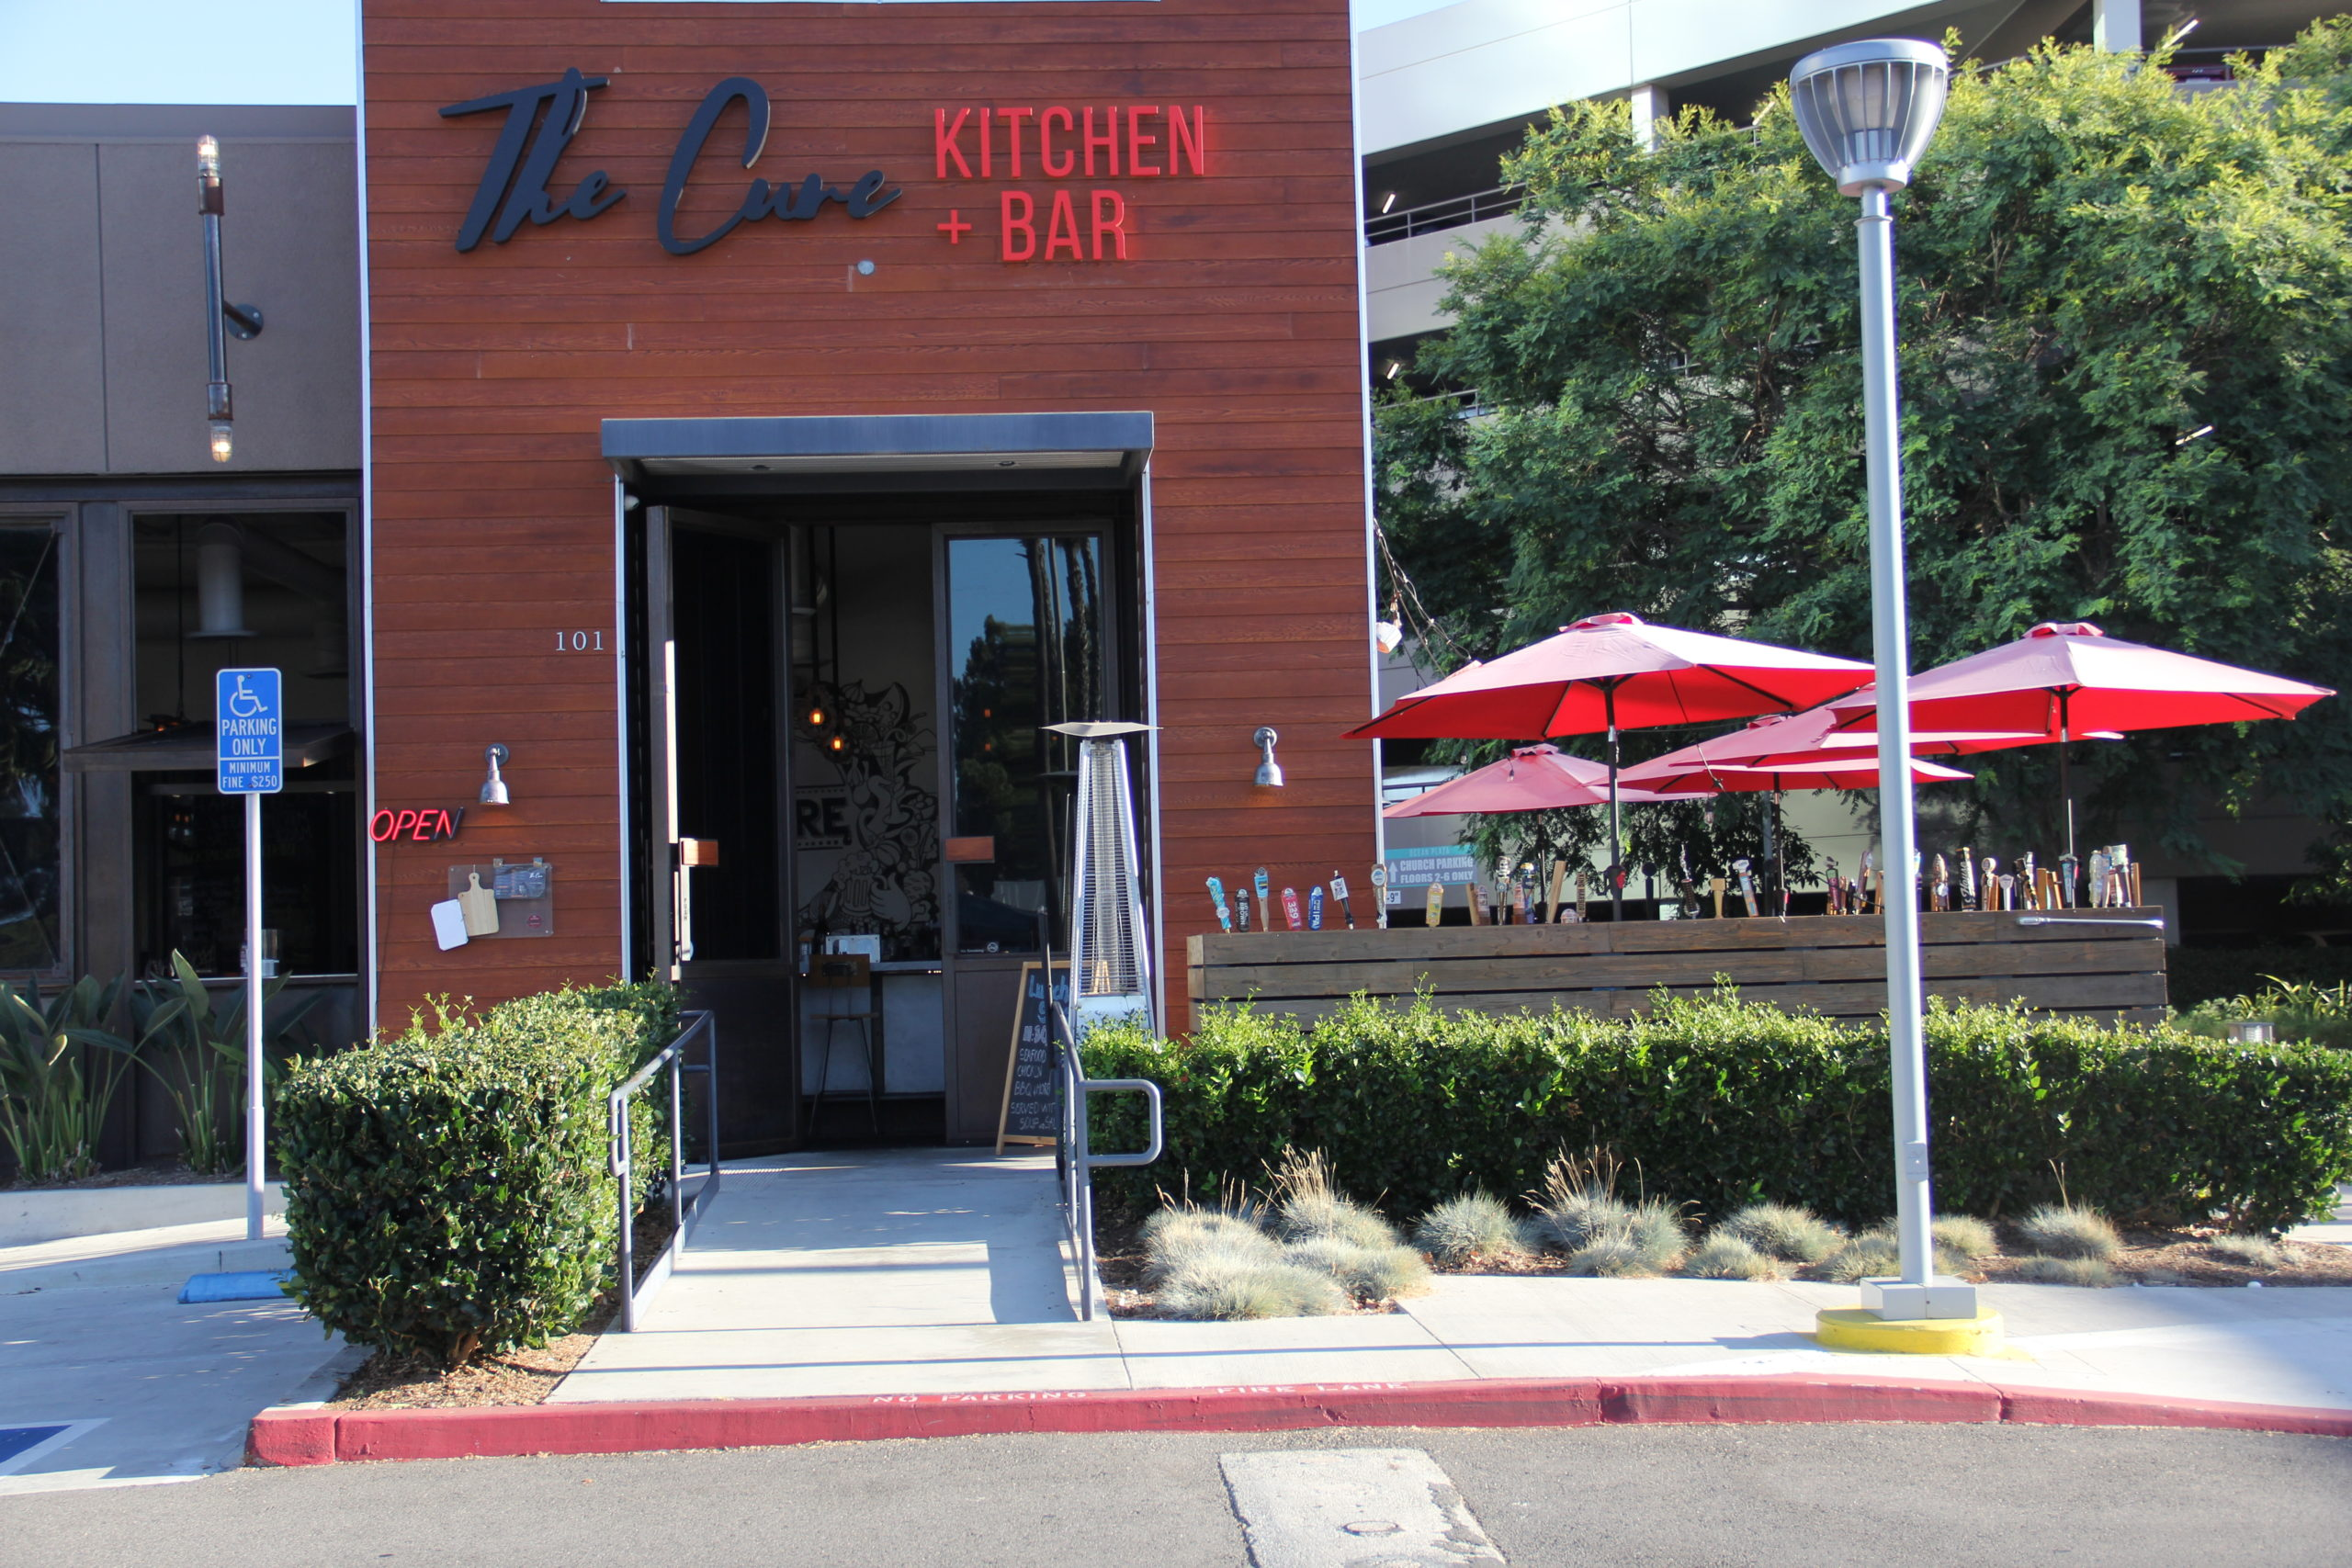 Cure Kitchen & Bar (The) – Huntington Beach